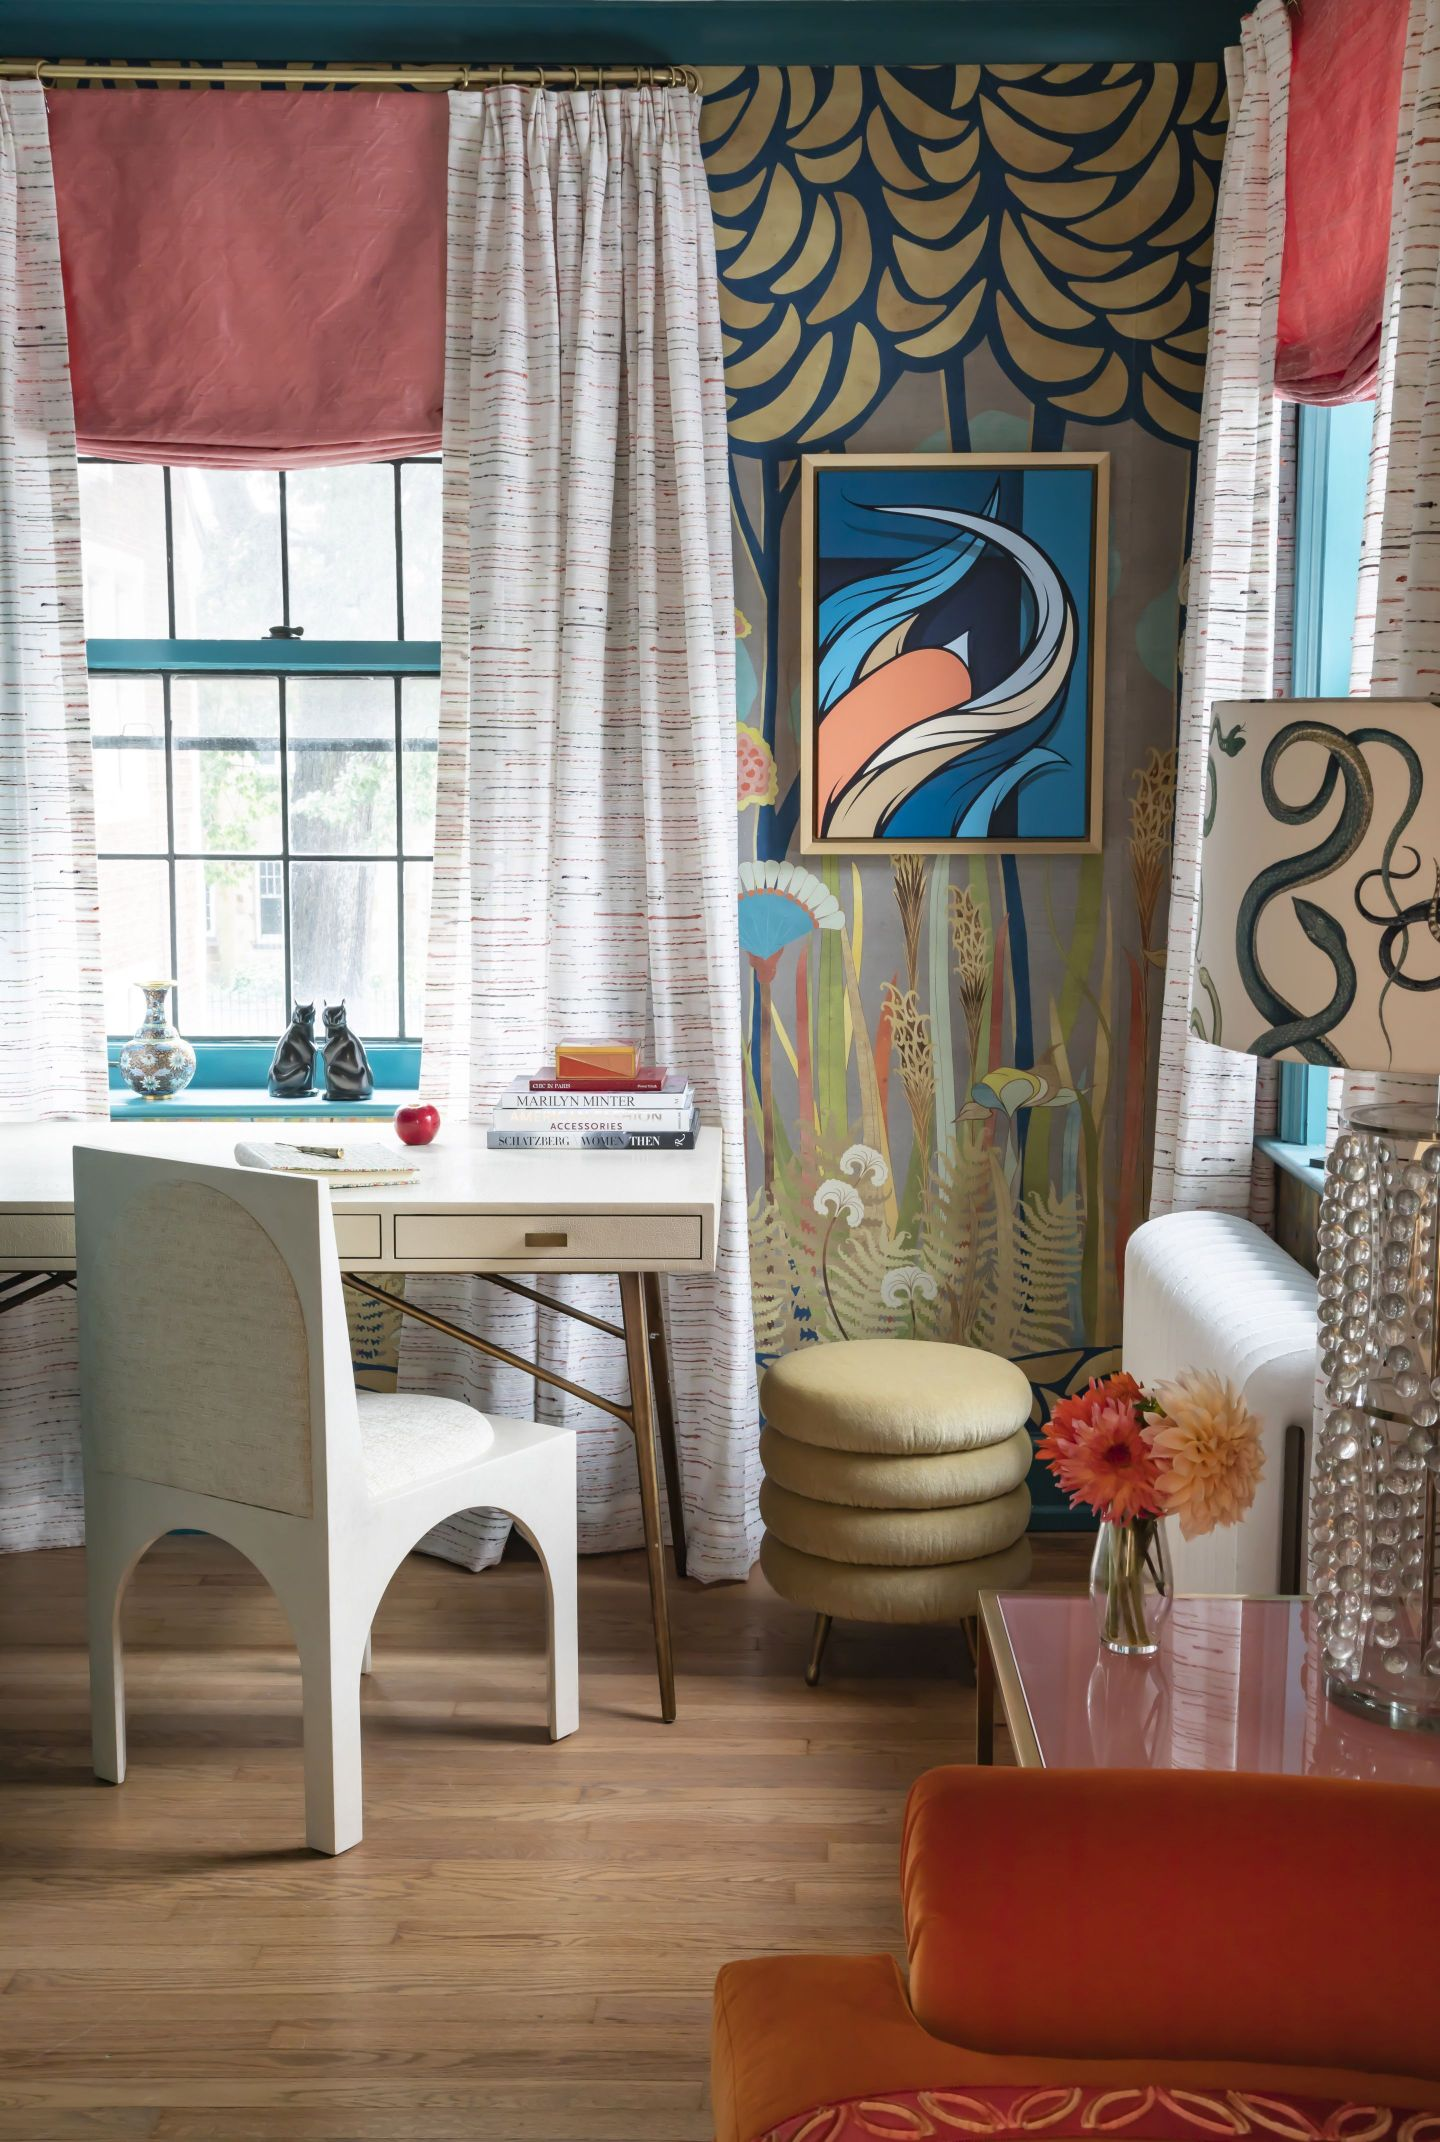 Courtney-McLeod-RMLID-JL-Showhouse_26 Tips for Adding Color and Pattern to a Roomfrom a Louisiana Native